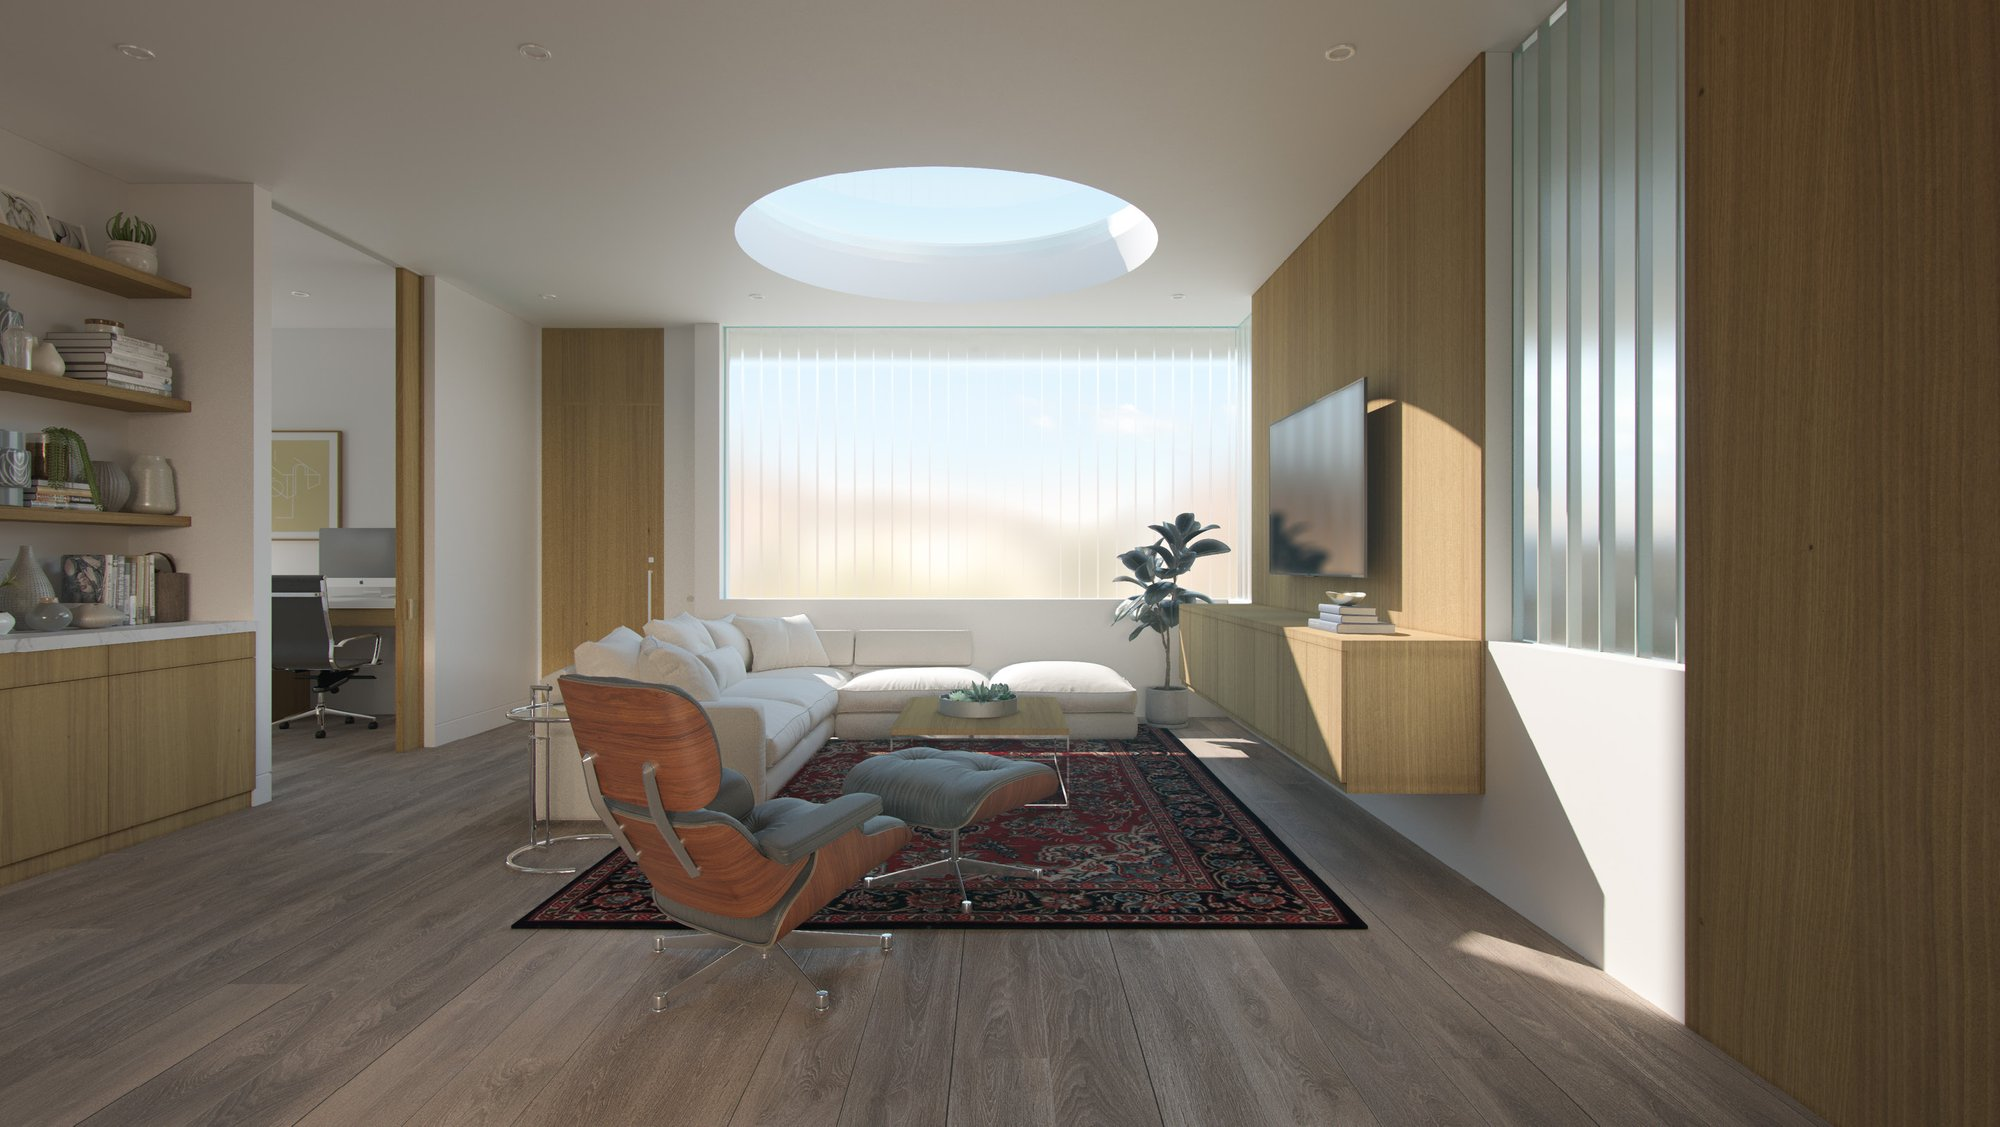 Great room with obscured view to the street and consistent beam of light from the oculus